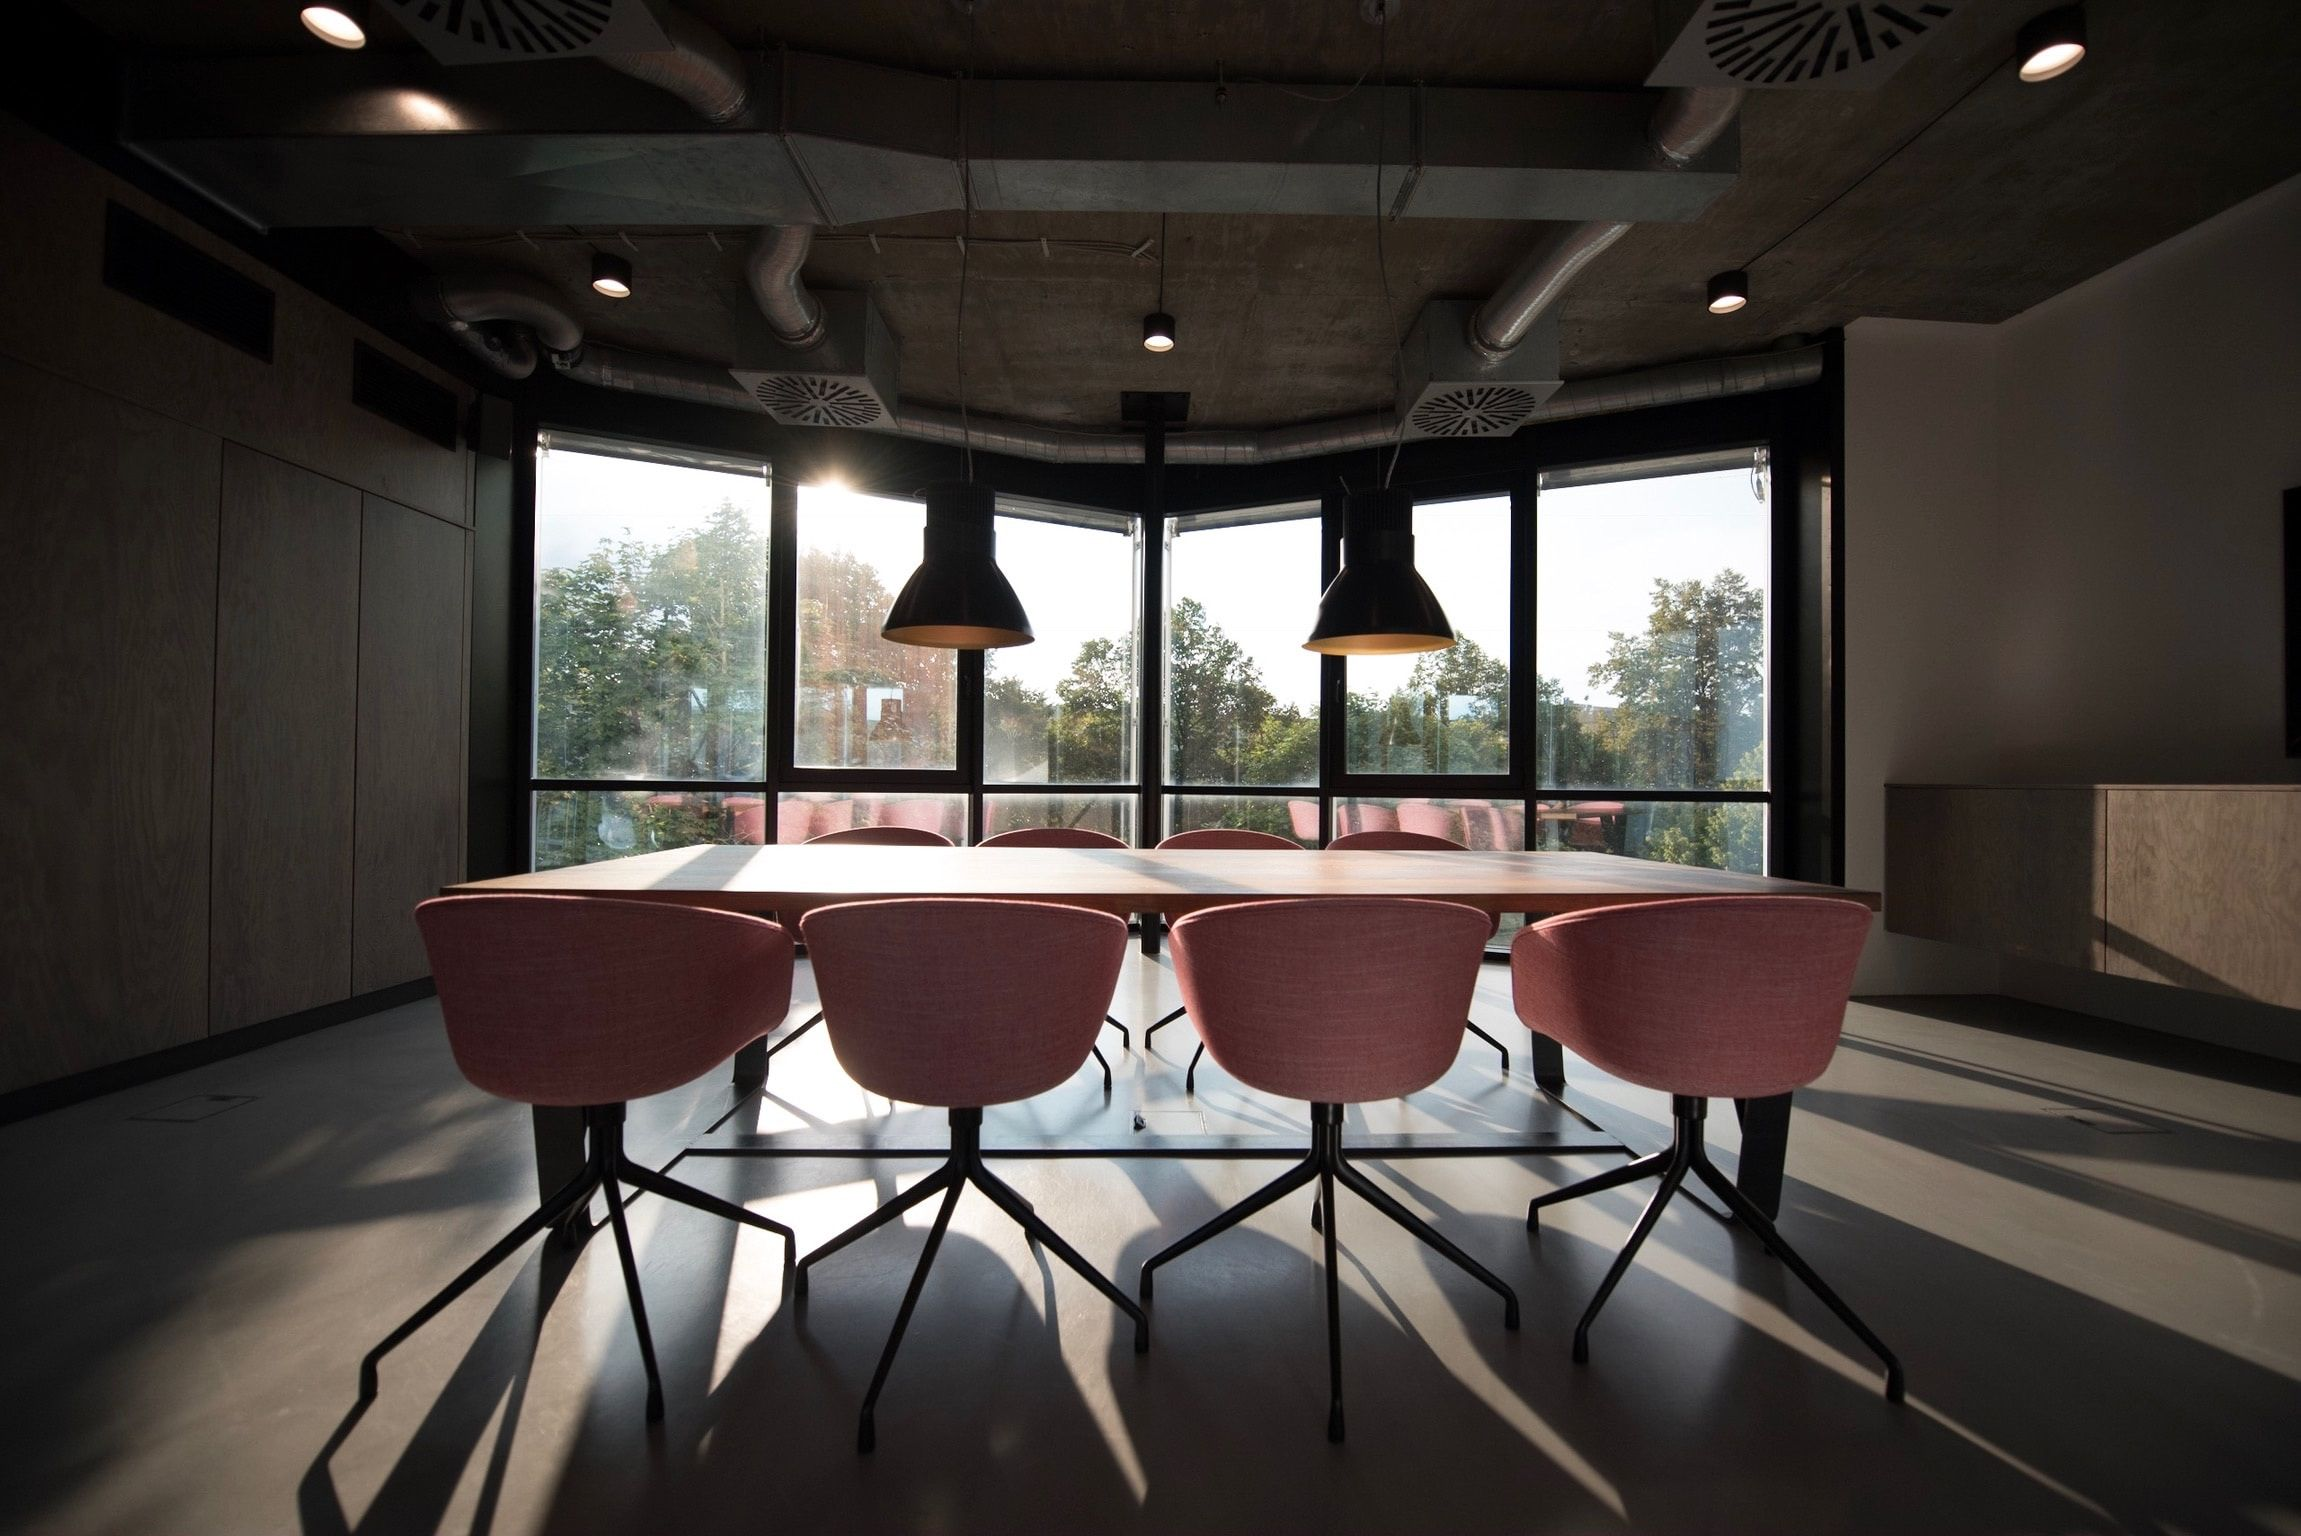 How and why to choose a neutral location for your next meeting